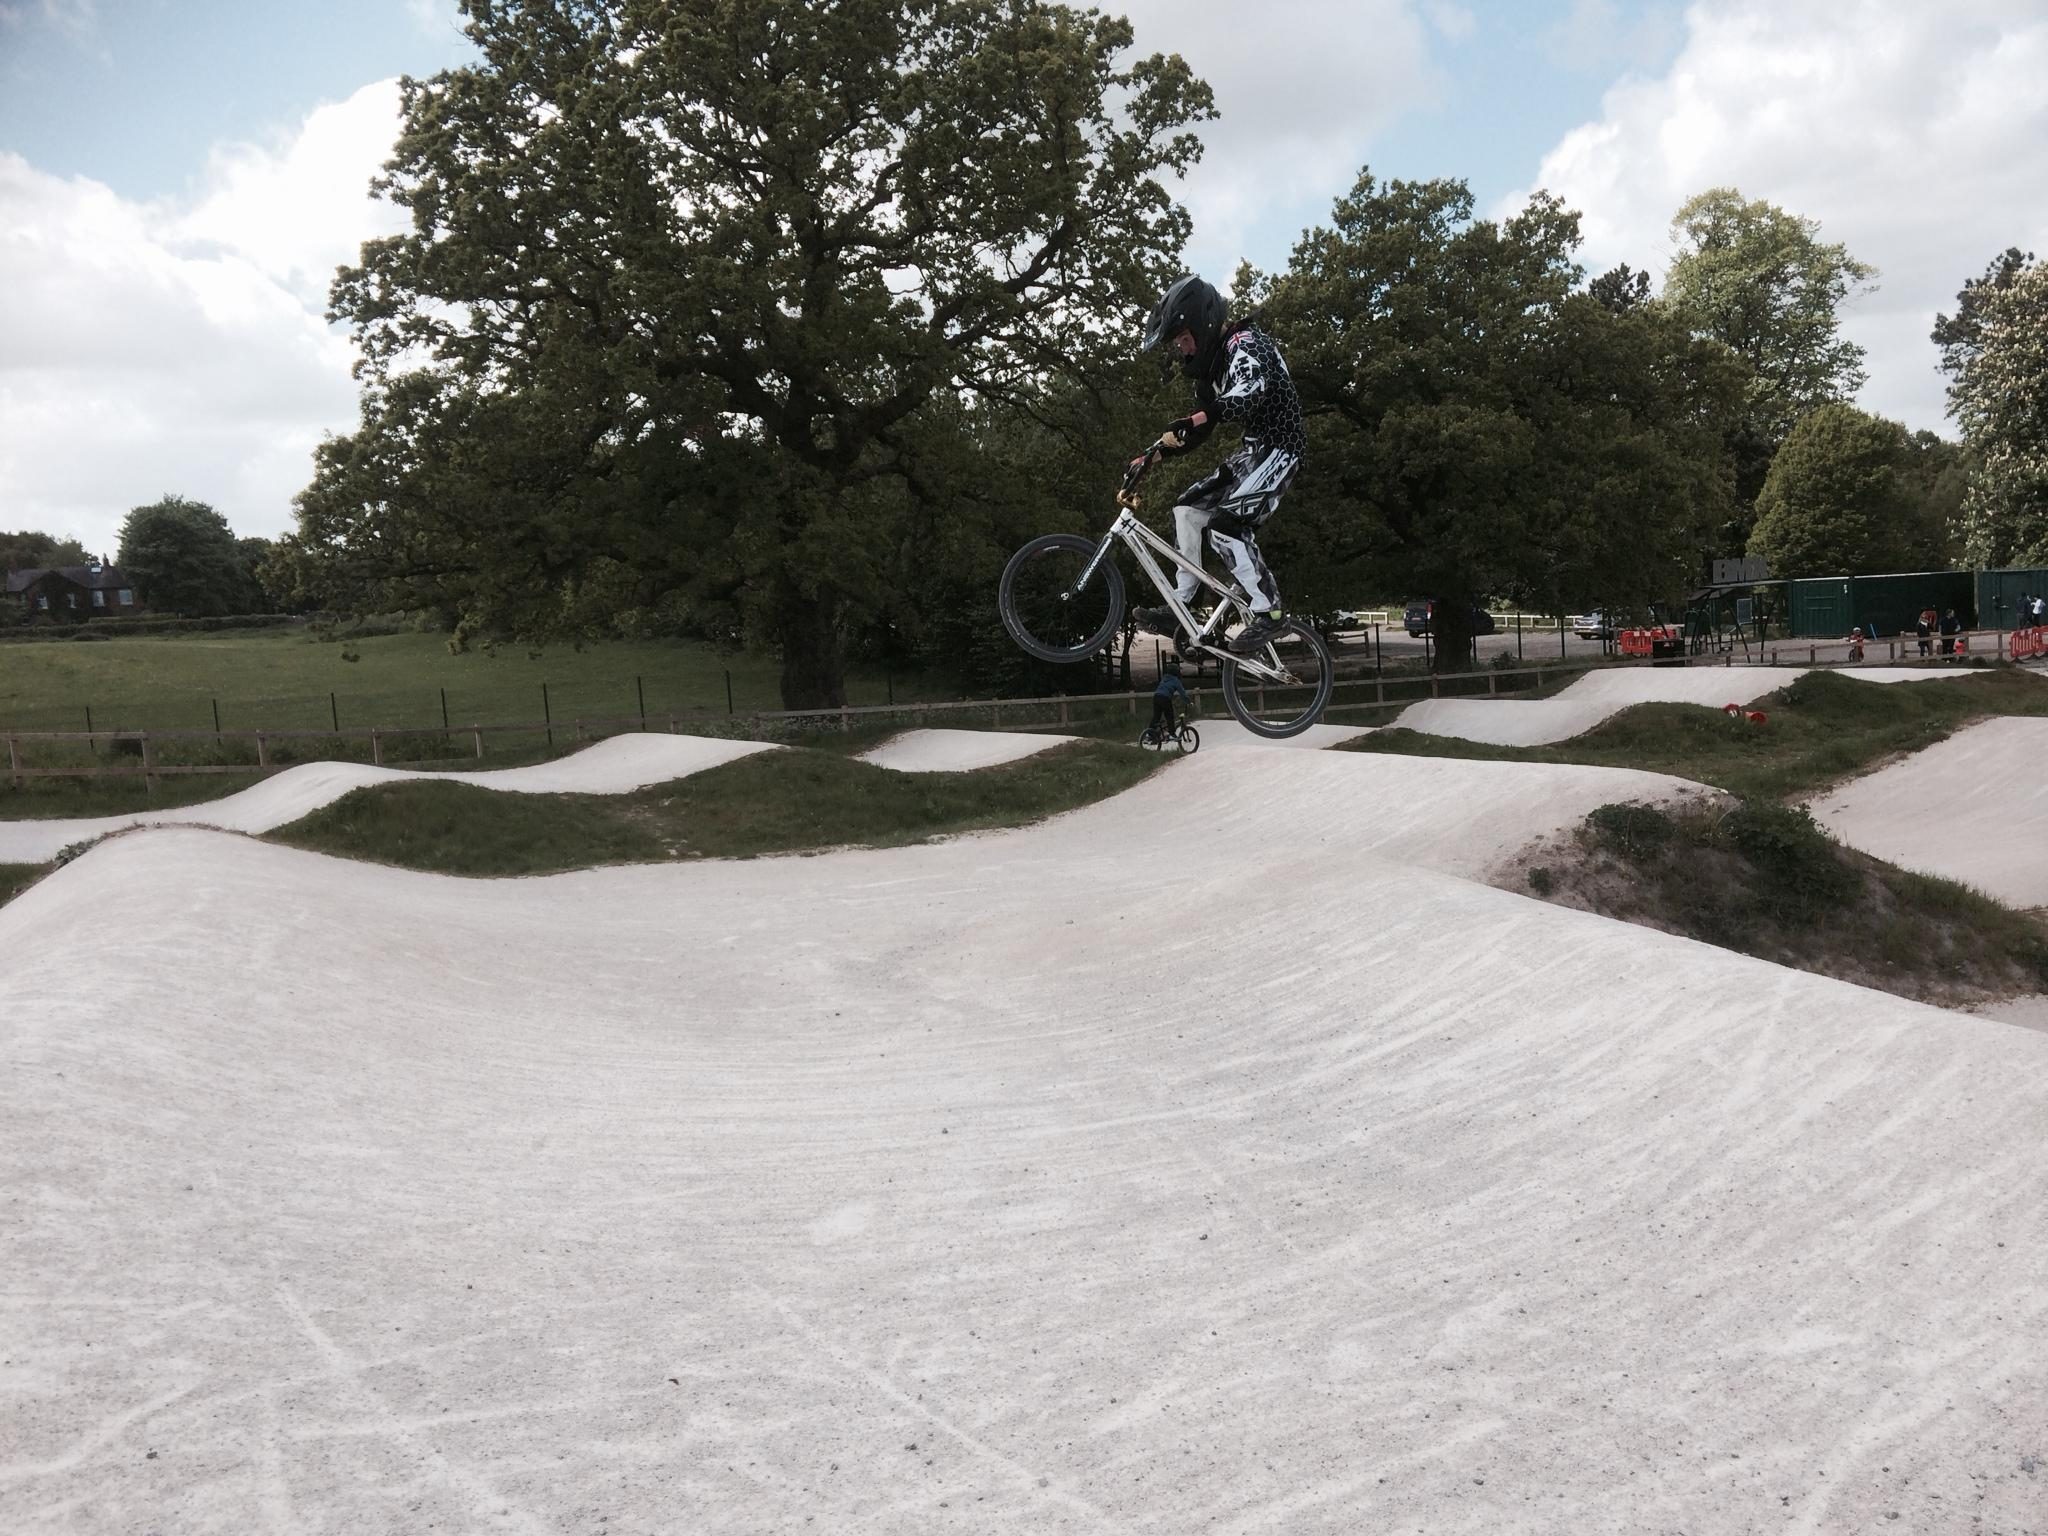 Lewis holmes Practice jumping BMX